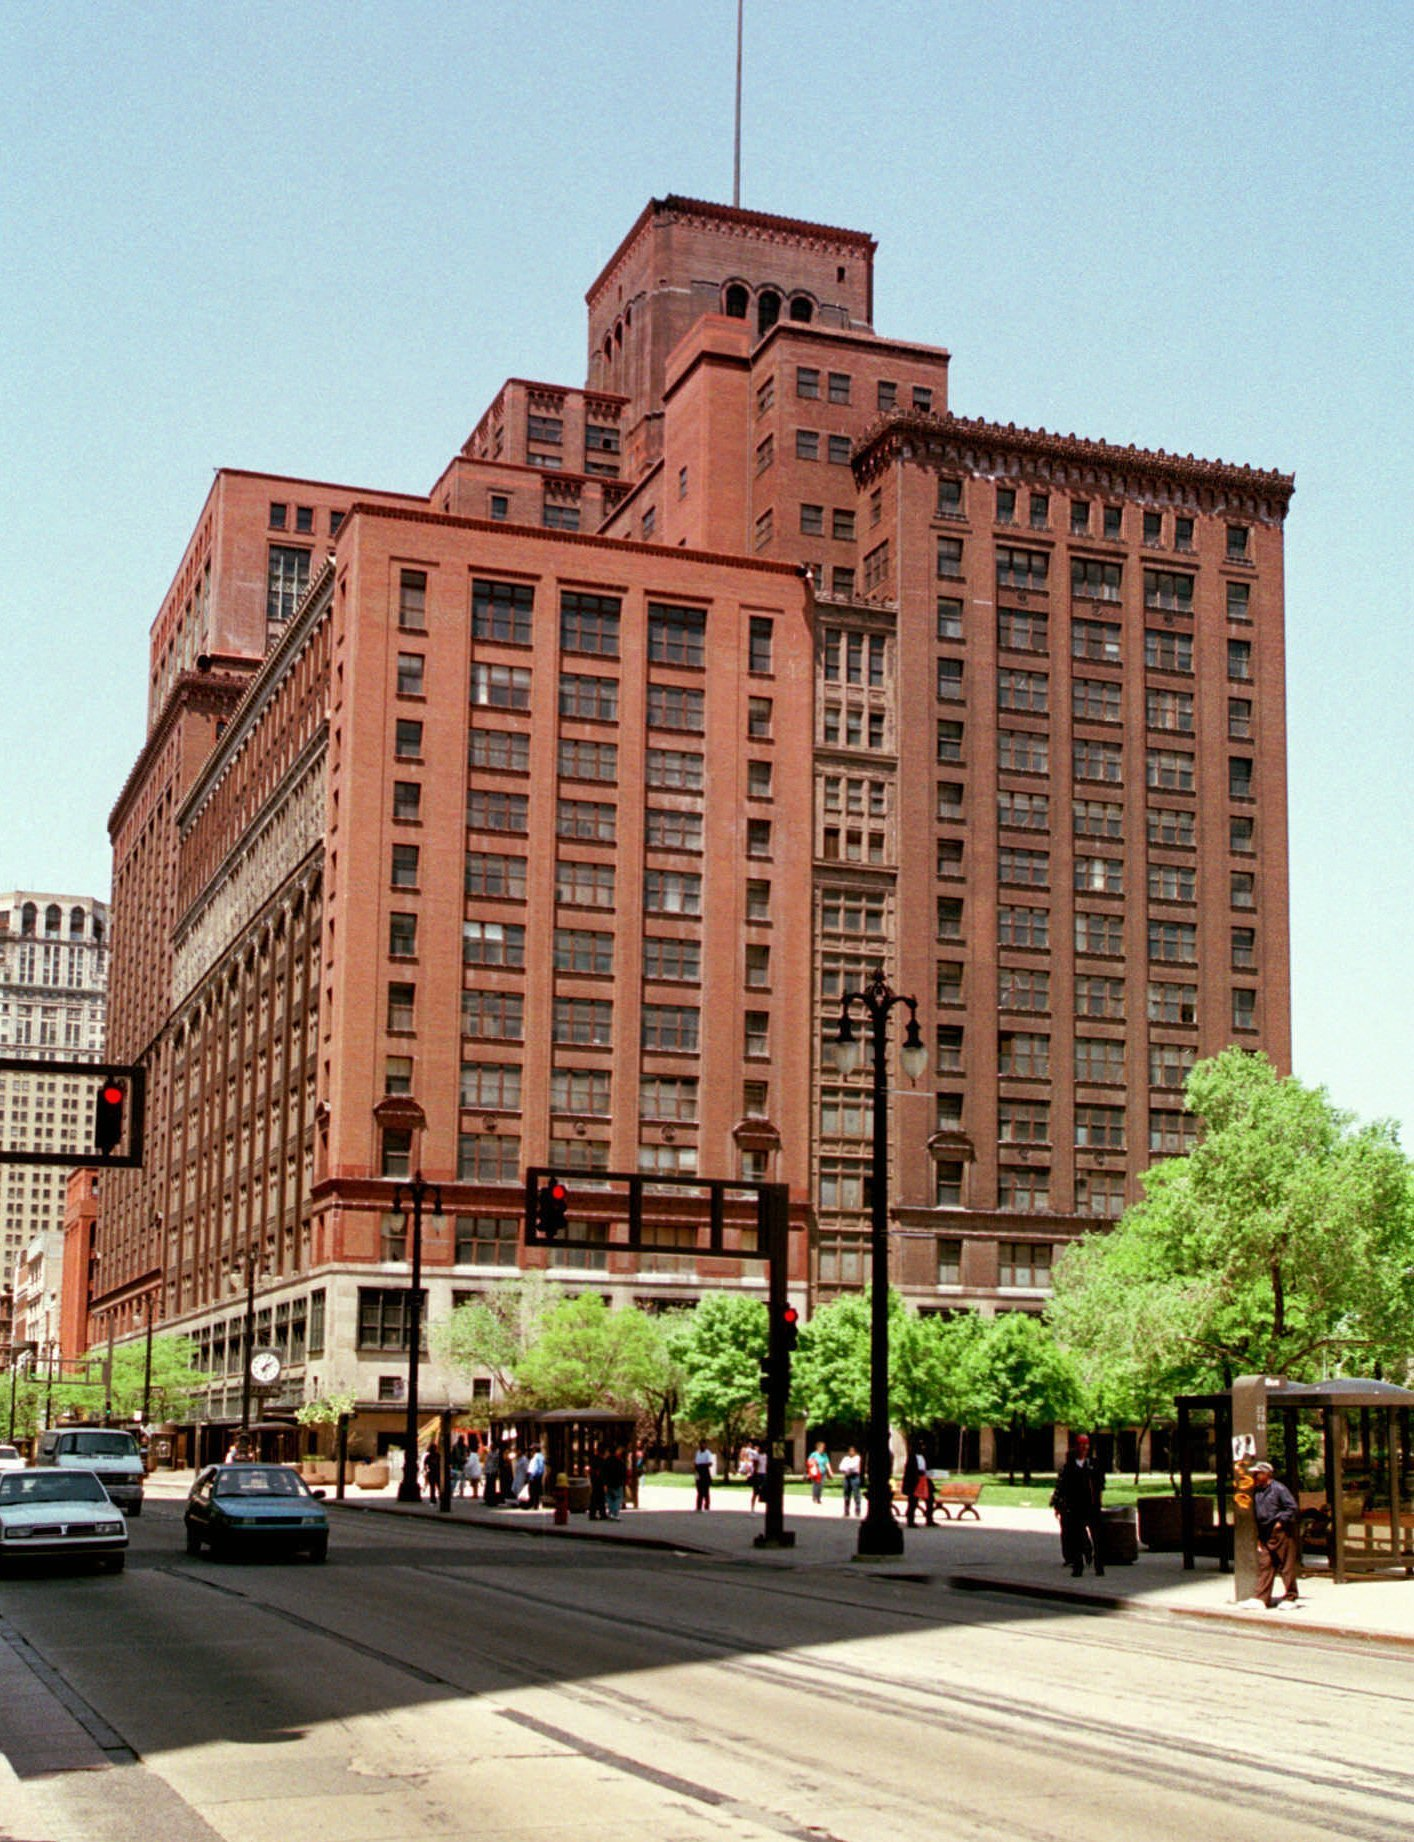 J.L. Hudson's department store stands in downtown Detroit, May 31, 1996. The iconic store's 1983 closing epitomized Detroit's economic downfall.